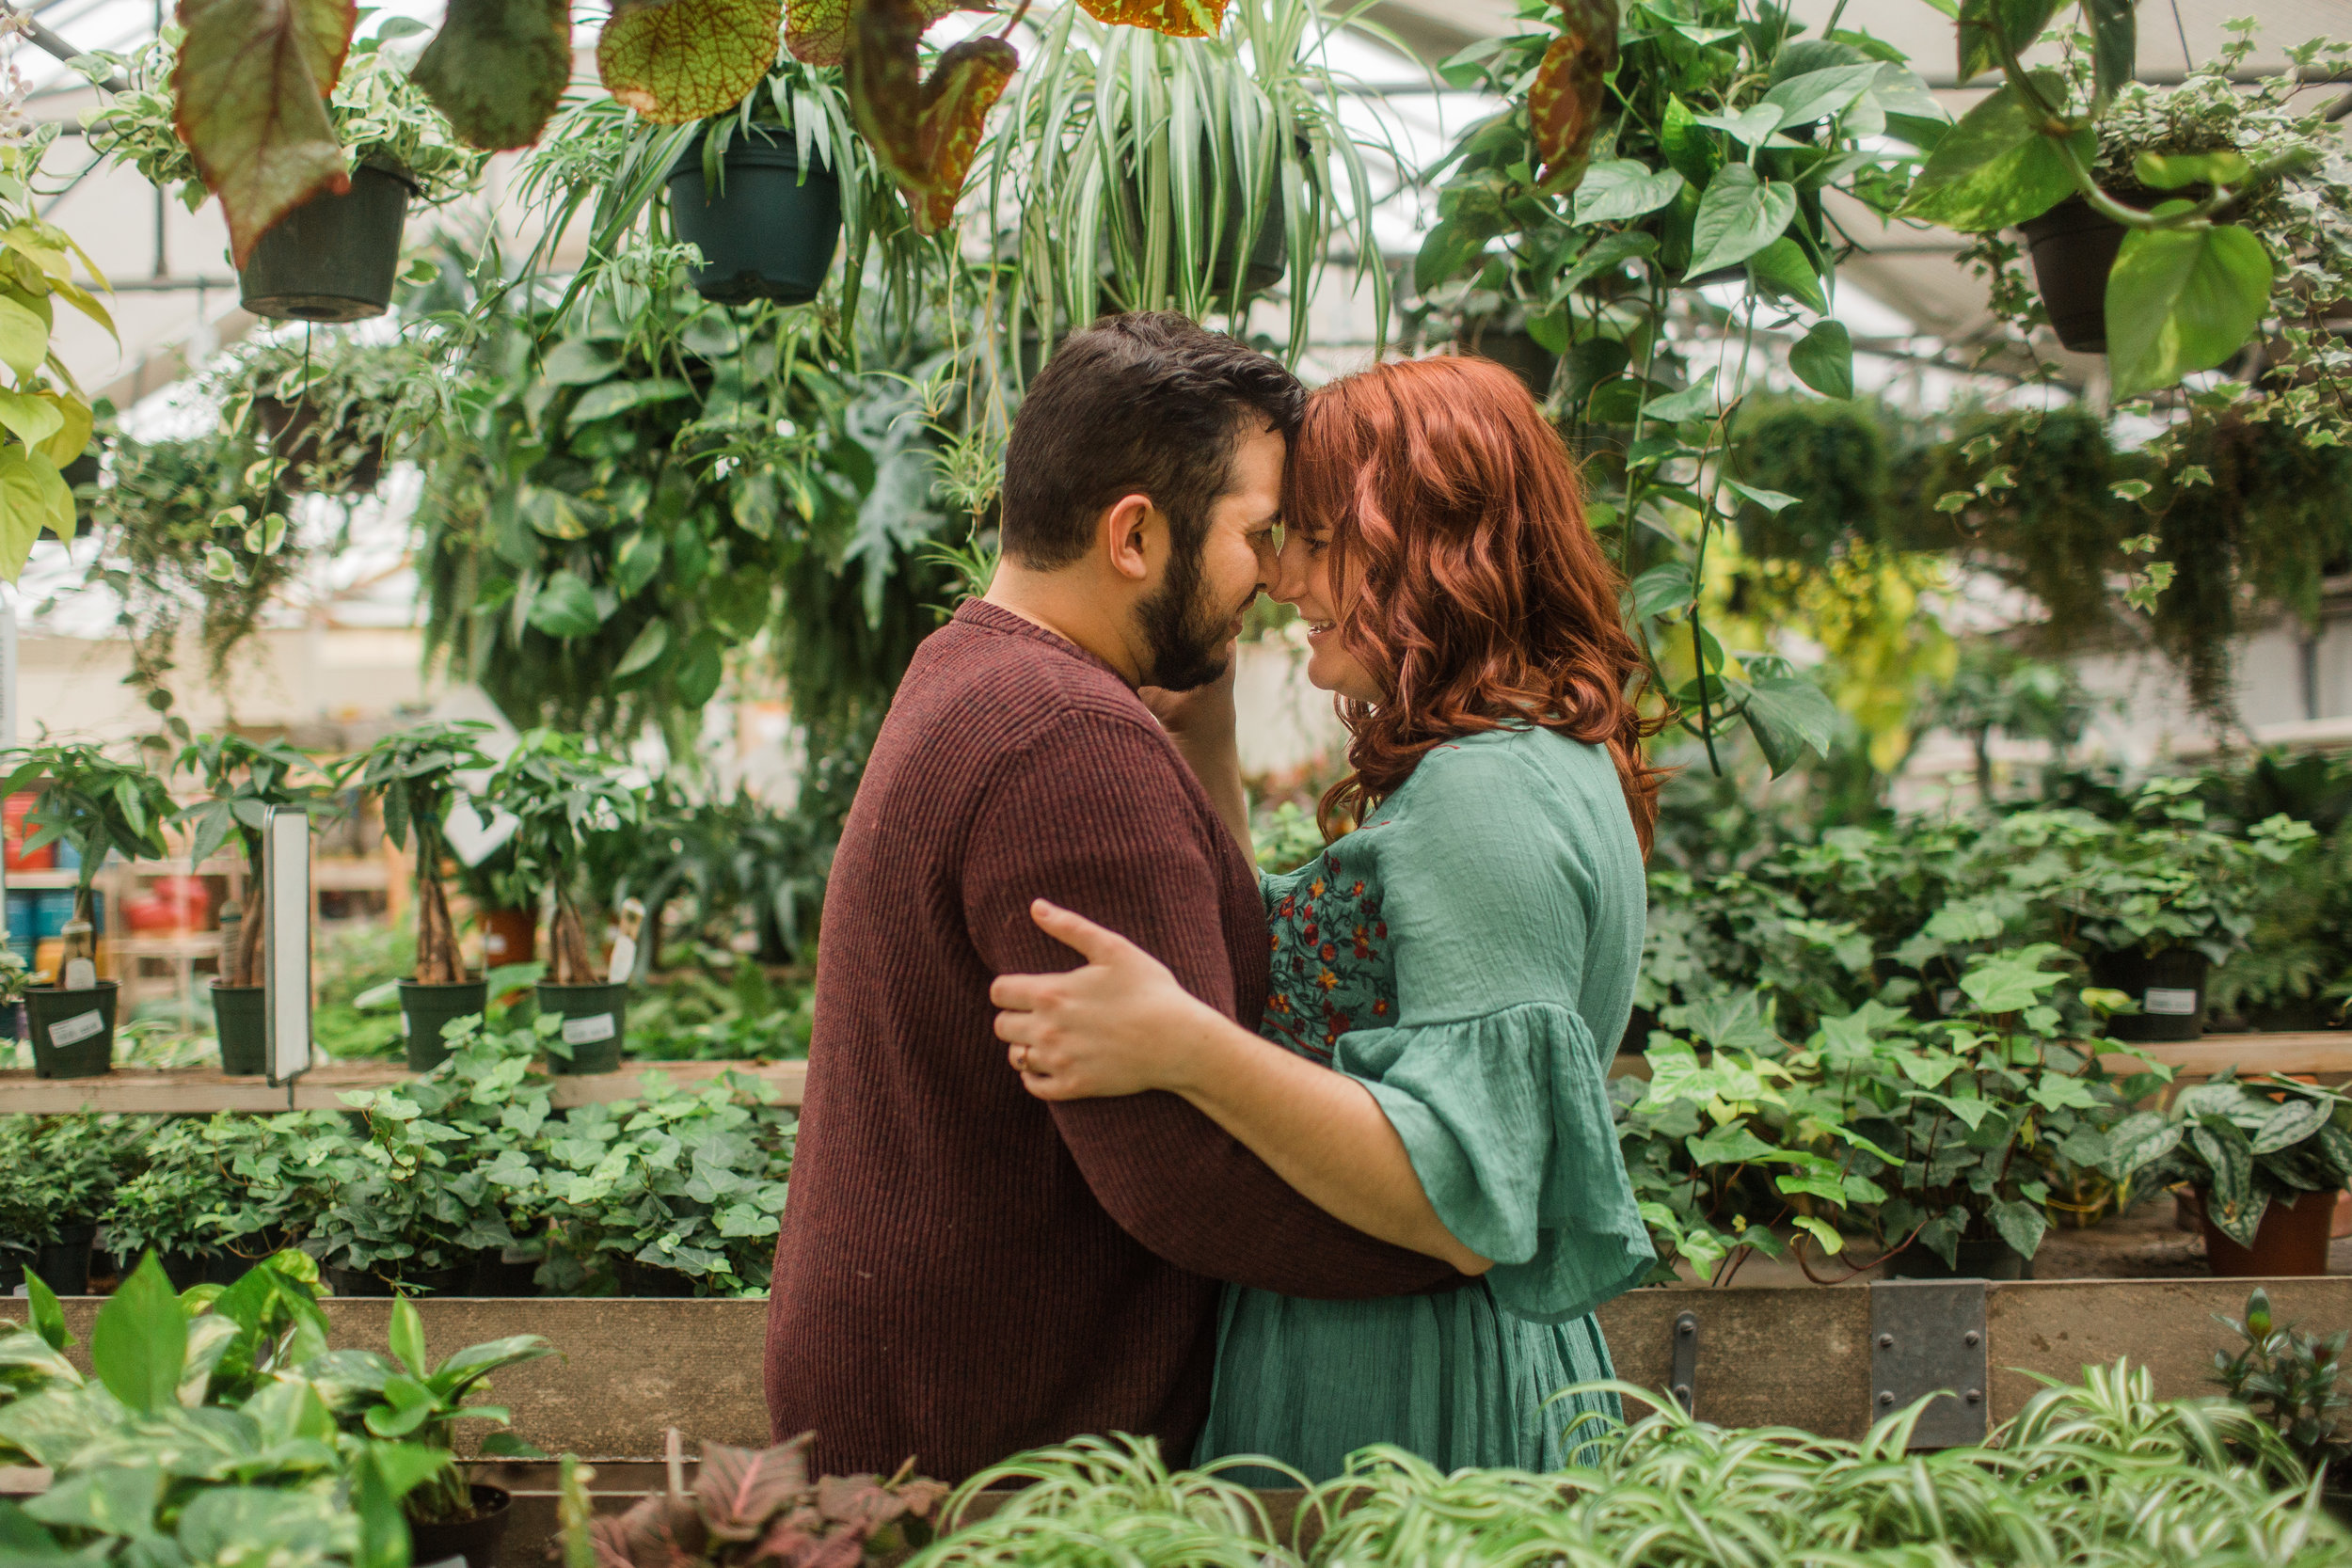 greenhouse engagement session winter Iowa Midwest des moines Amelia renee